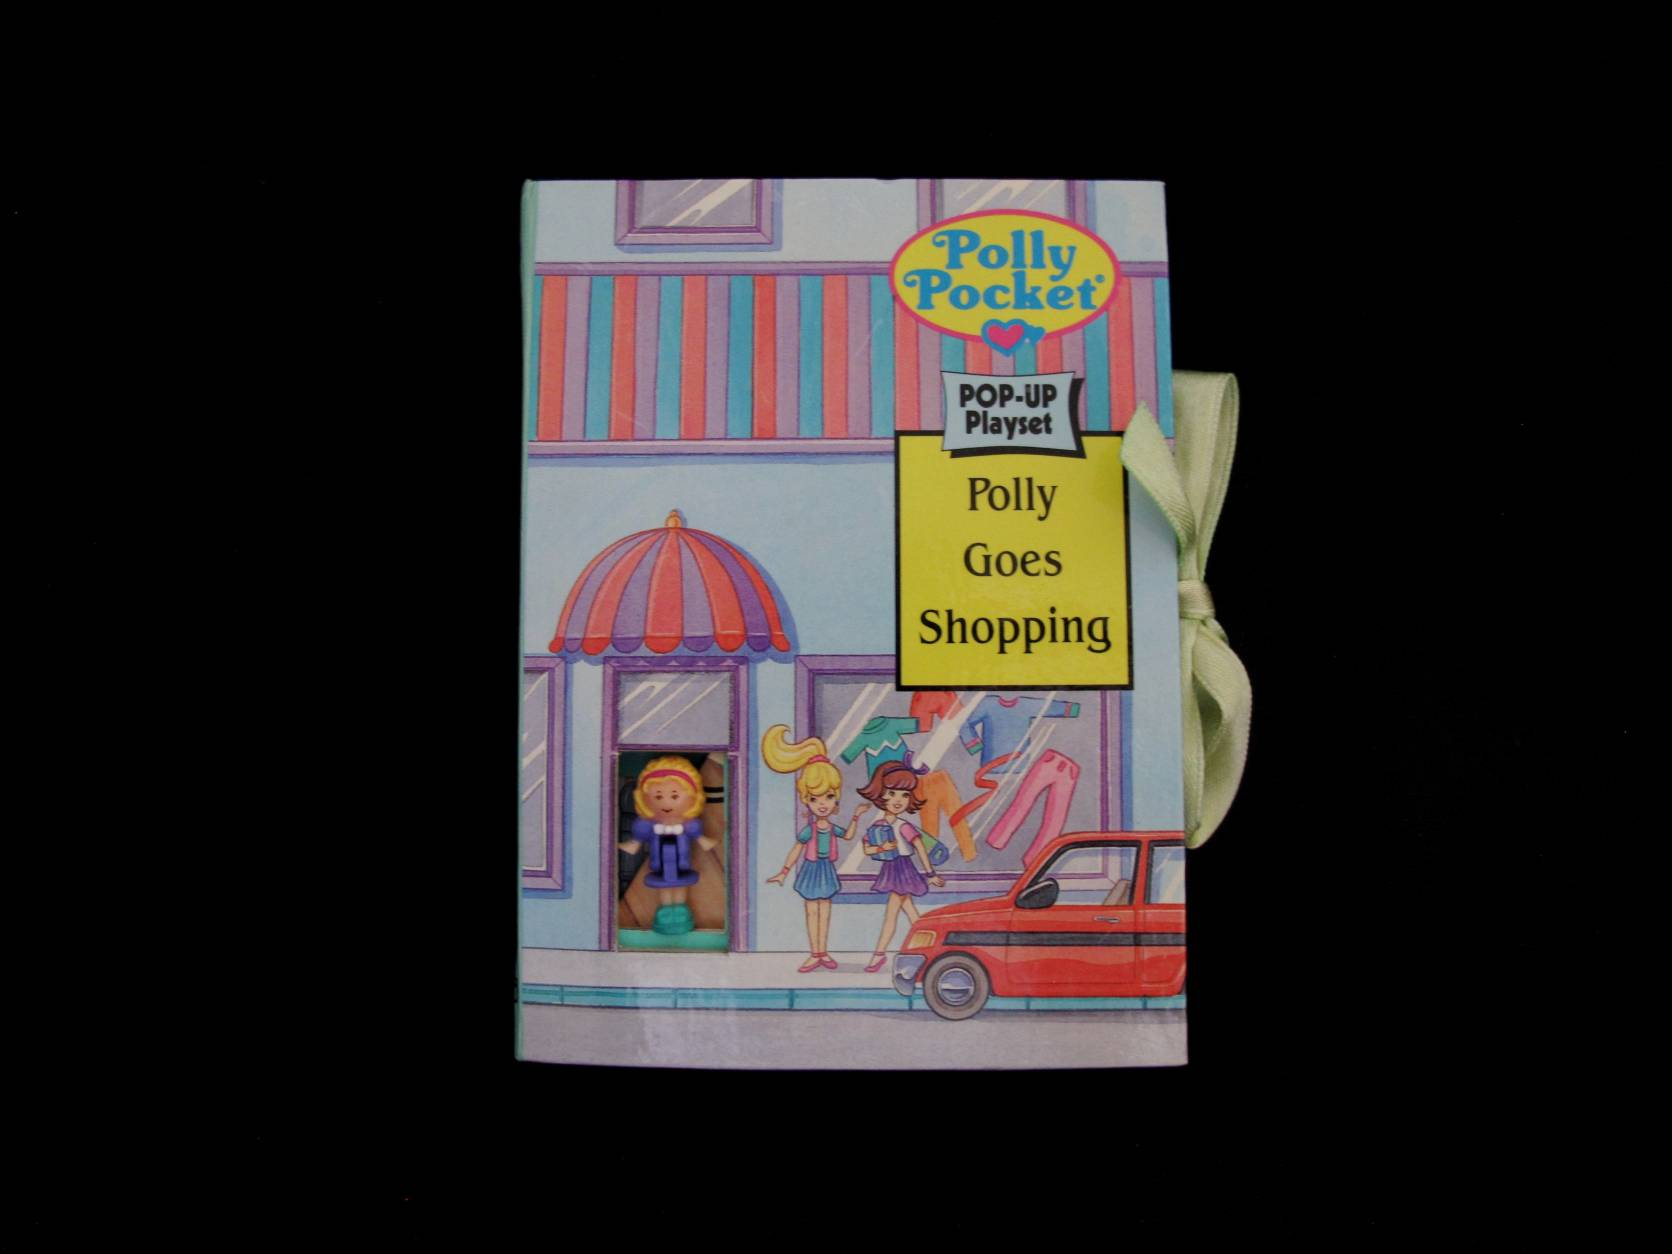 1996 Pop up playset Polly goes shopping Polly Pocket